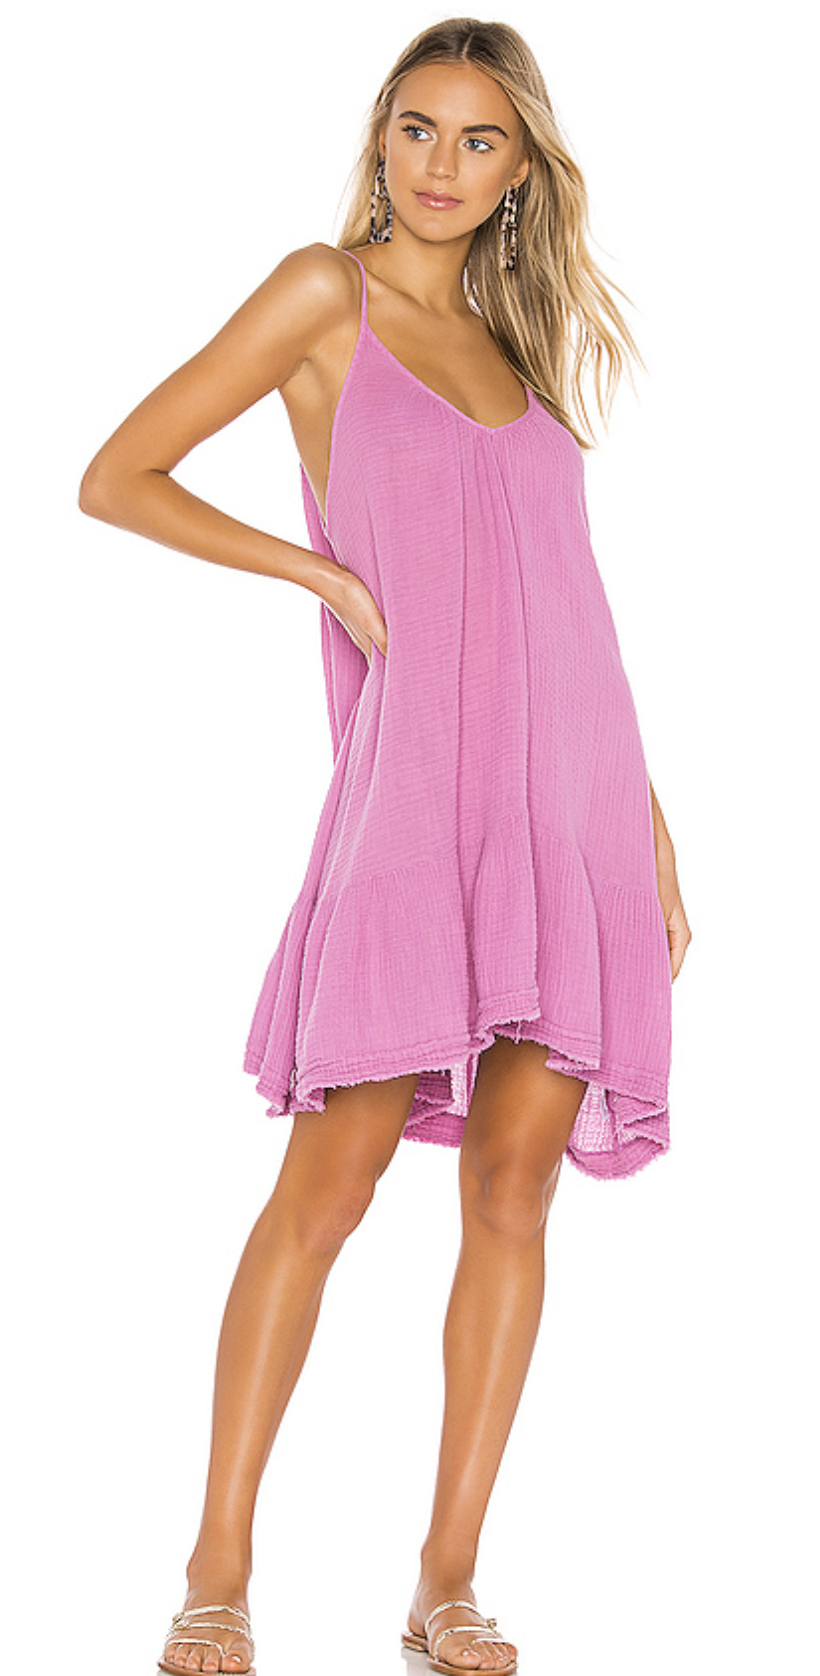 9seed St Tropez Ruffle Mini Beach Dress in Petal Rose - Lightweight Gauze